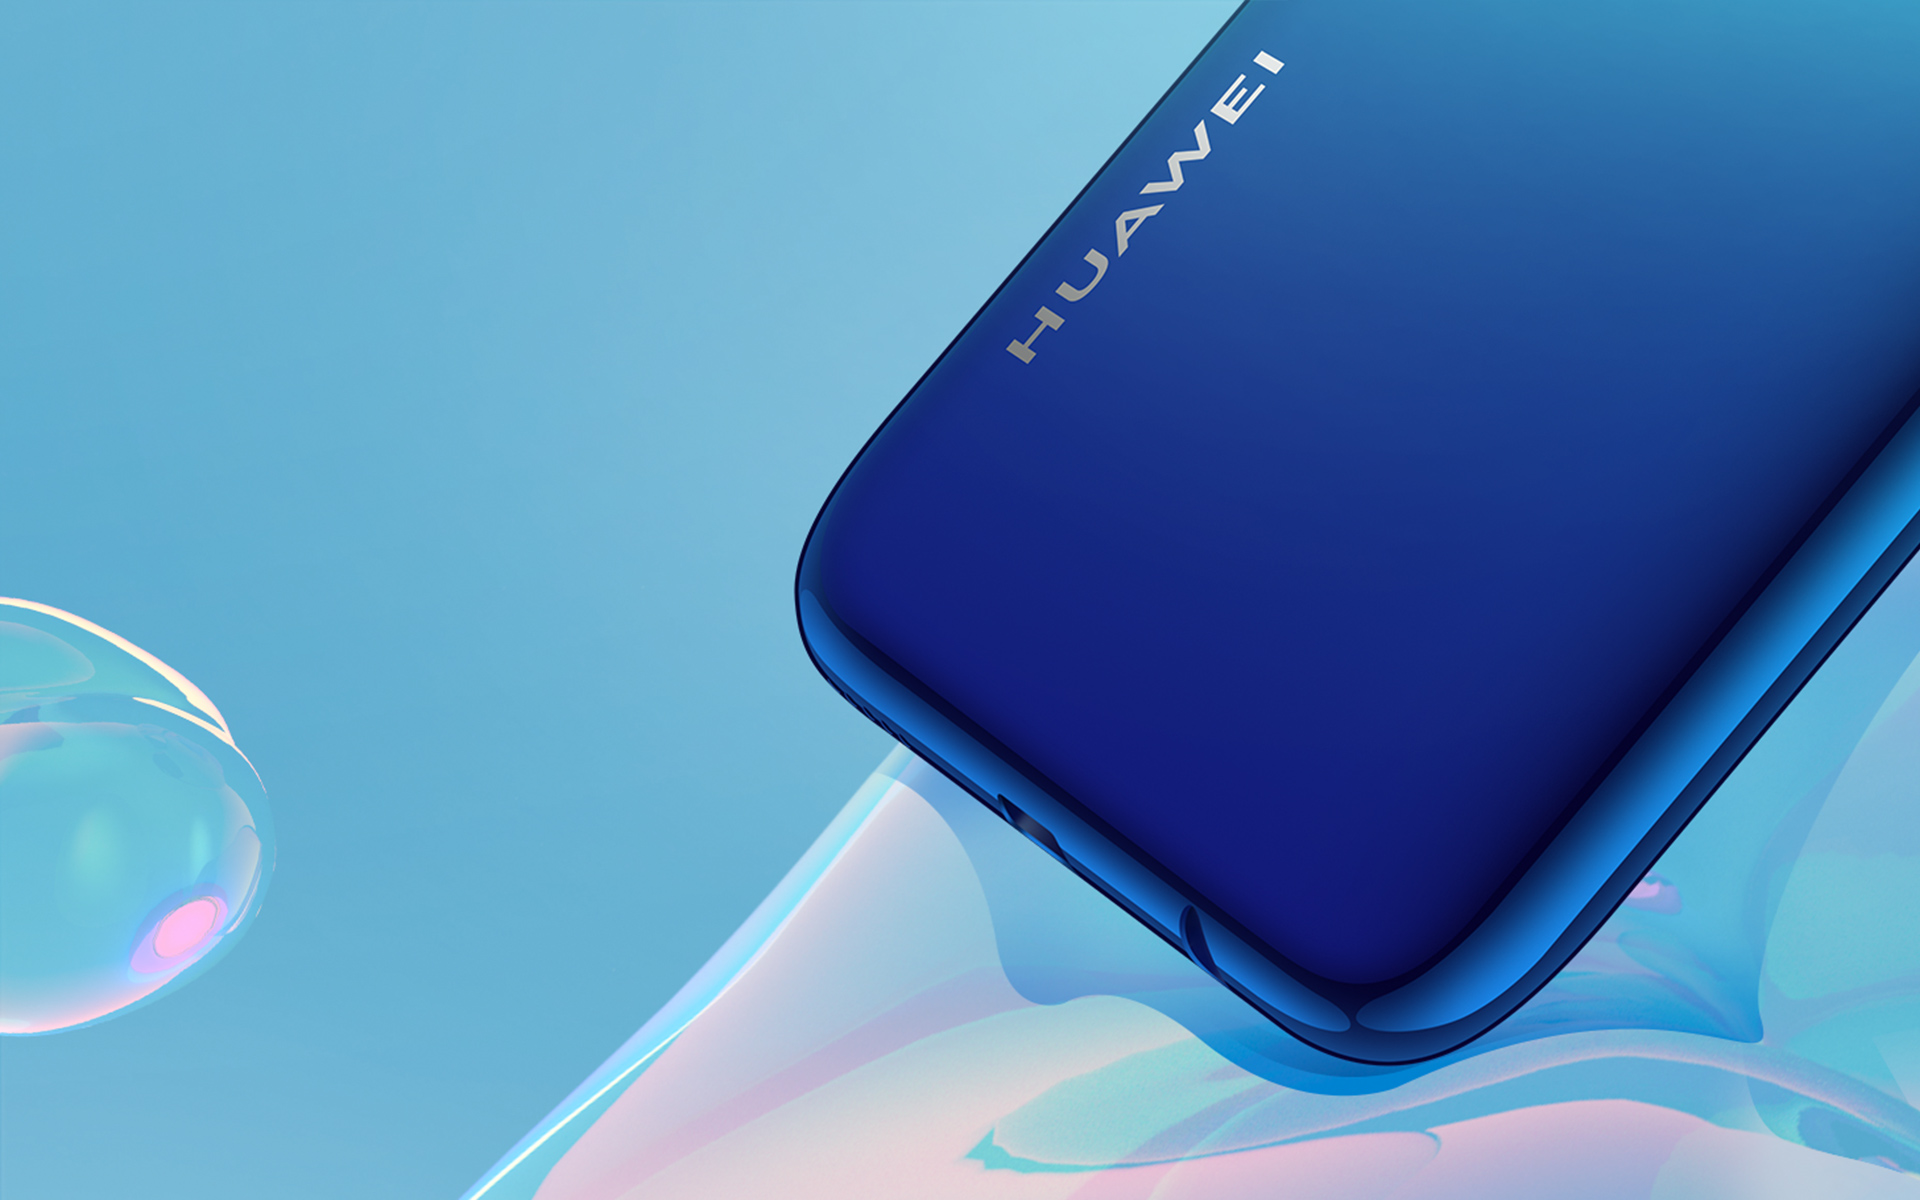 huawei p smart 2020 3D curved design